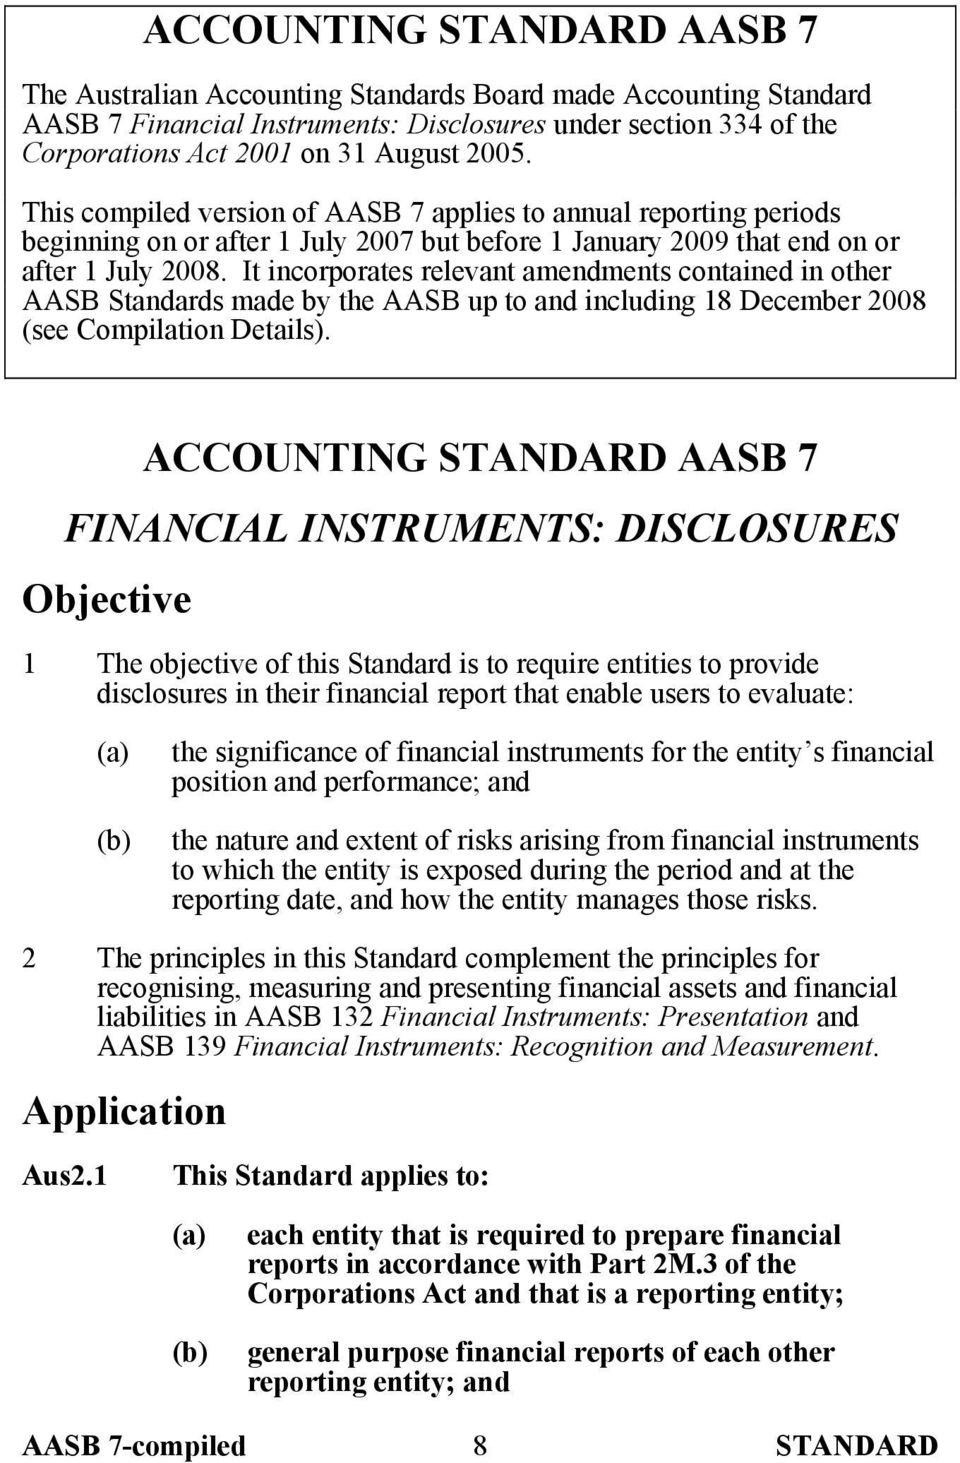 It incorporates relevant amendments contained in other AASB Standards made by the AASB up to and including 18 December 2008 (see Compilation Details).